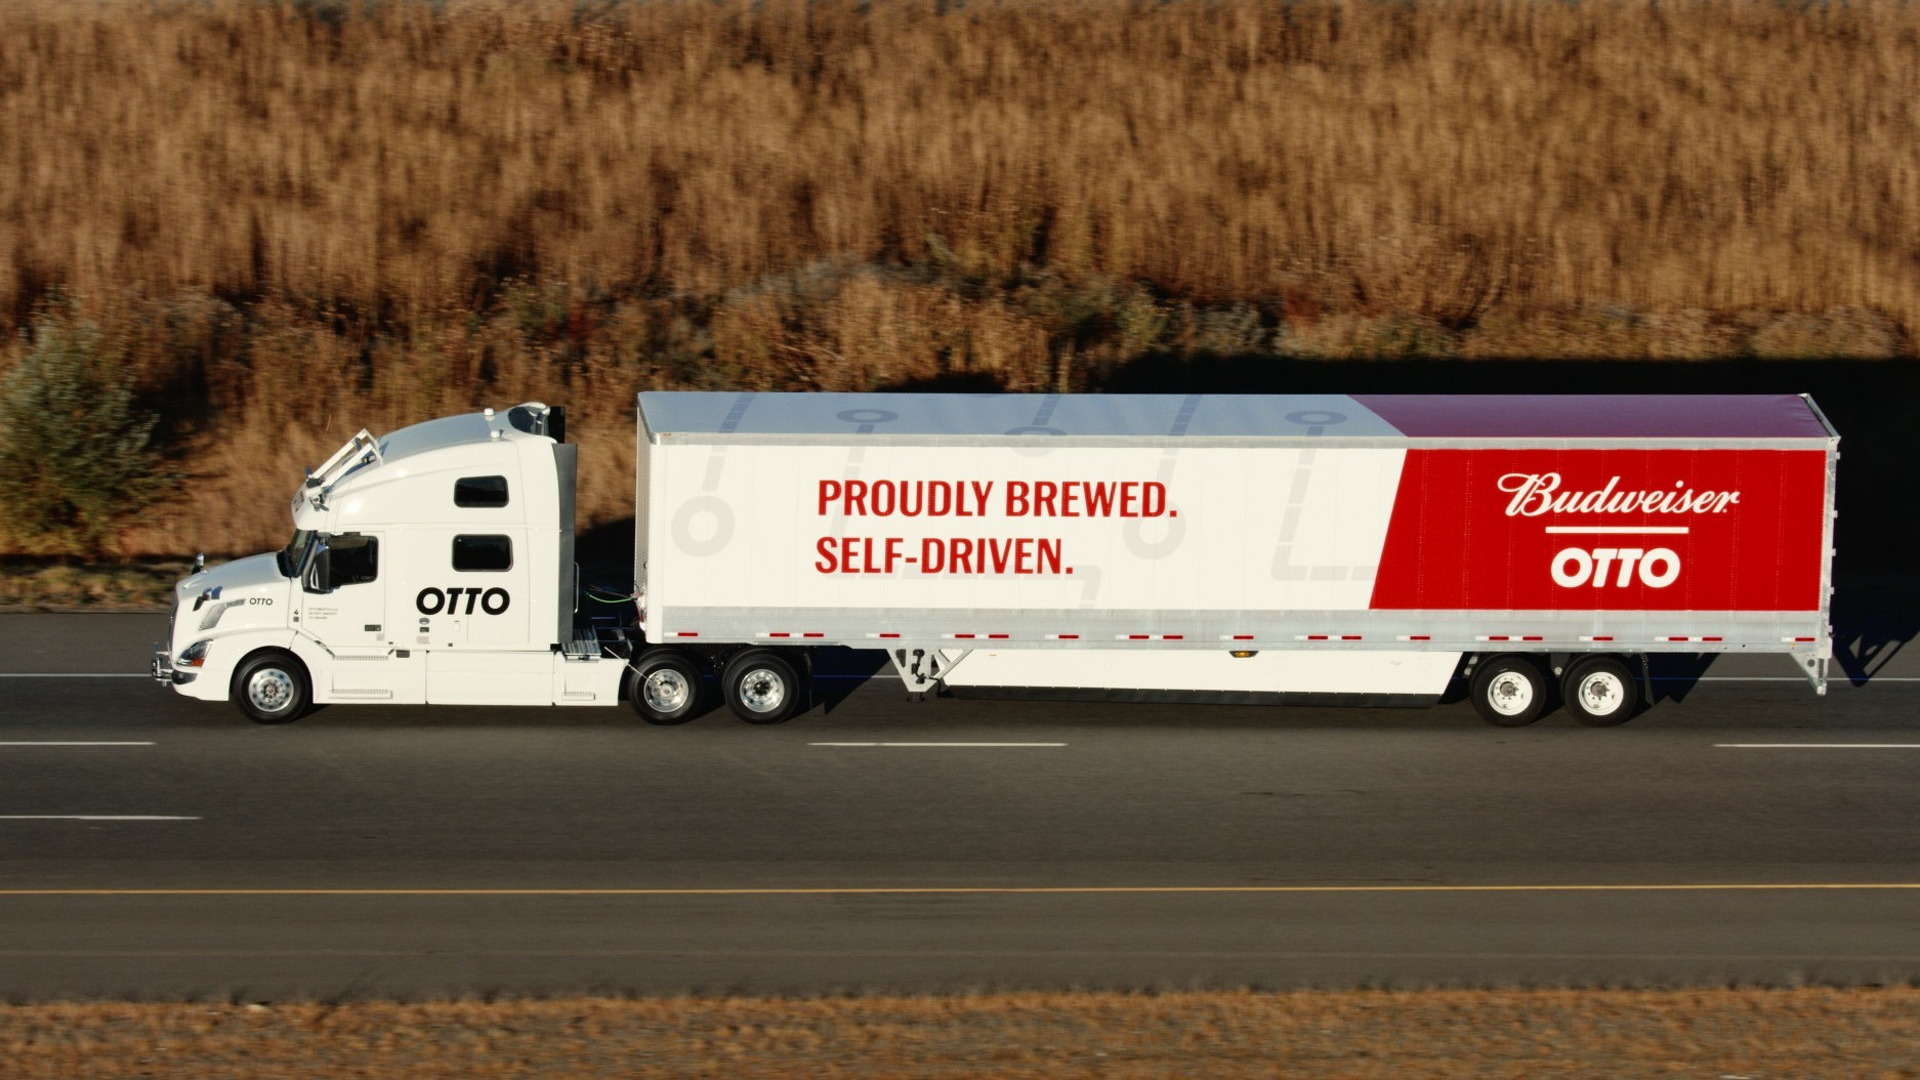 uber-makes-first-autonomous-beer-run-with-self-driving-delivery-truck